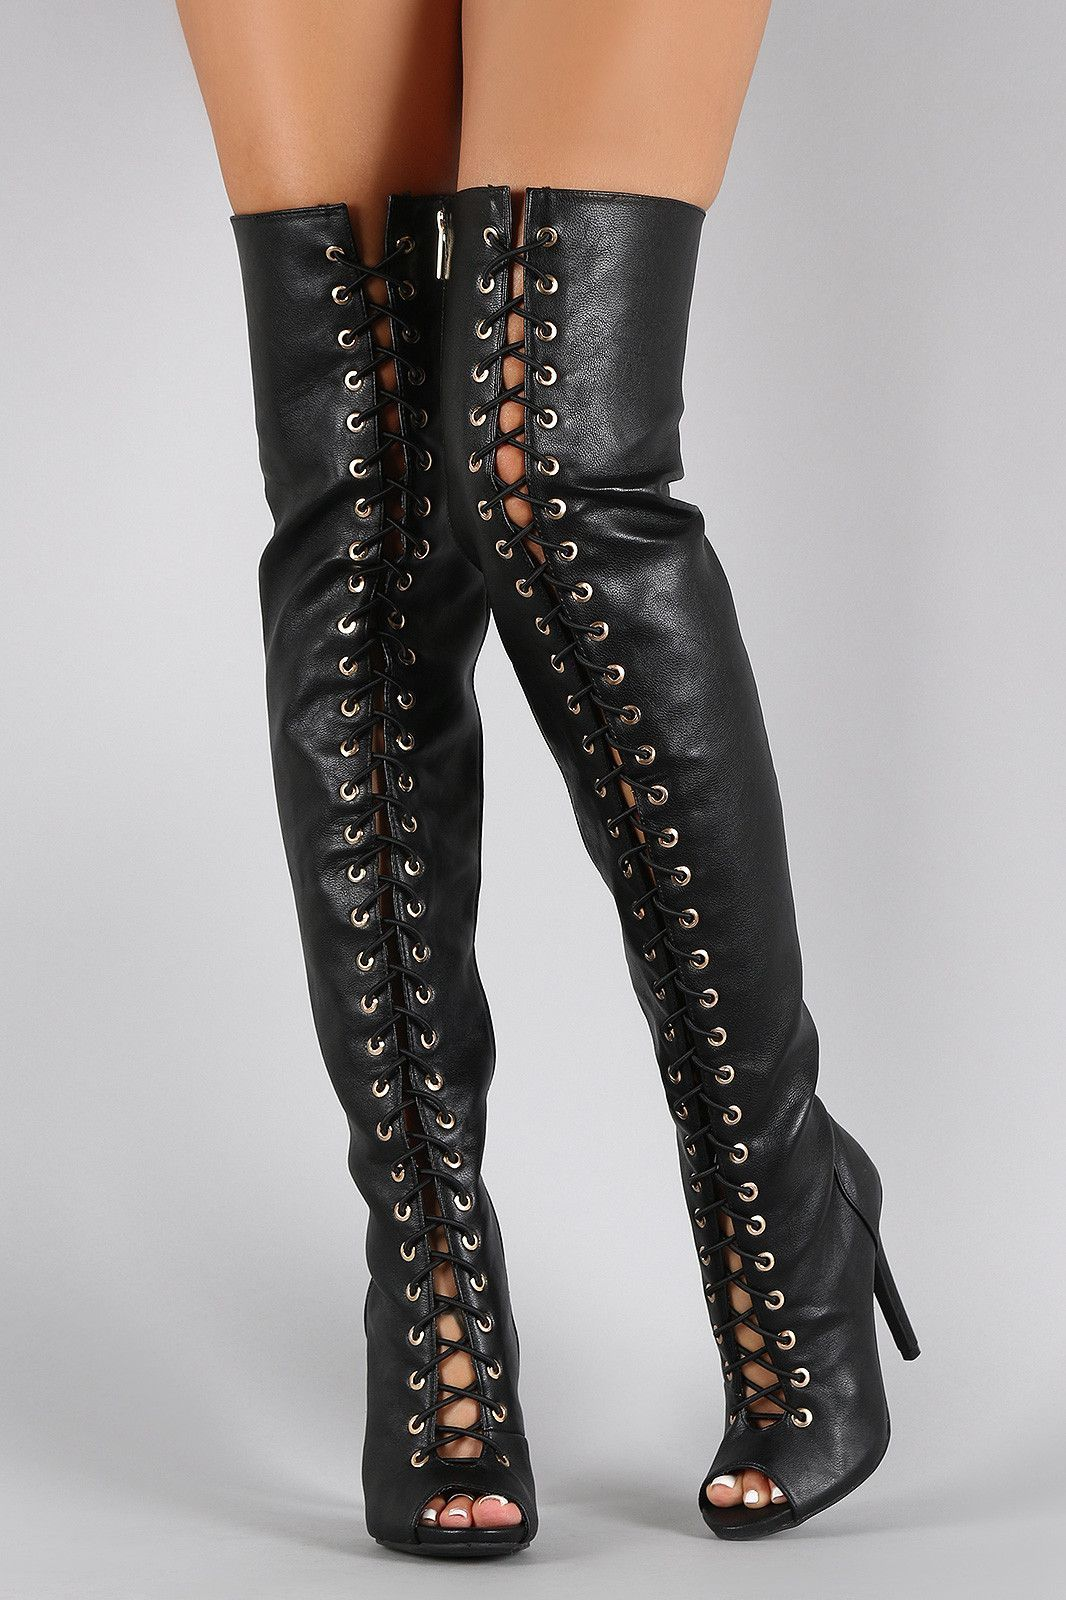 d4159ded66 Dollhouse Vegan Leather Lace Up Peep Toe Stiletto Thigh High Boots ...